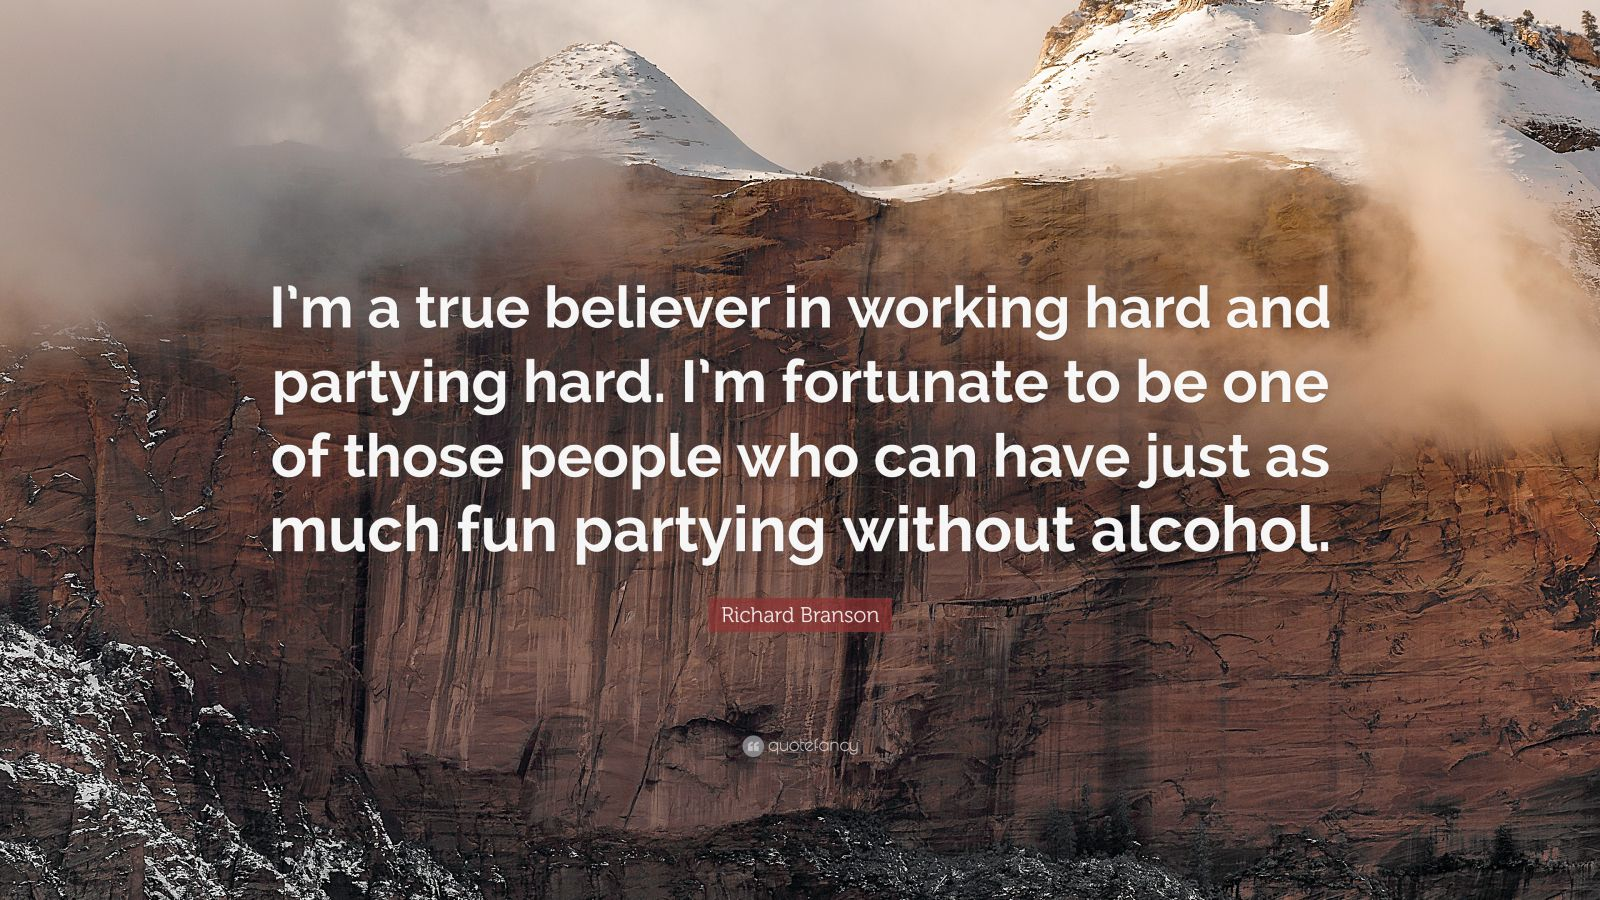 """Richard Branson Quote: """"I'm a true believer in working hard and partying hard. I'm fortunate to be one of those people who can have just as much fun partying without alcohol."""""""